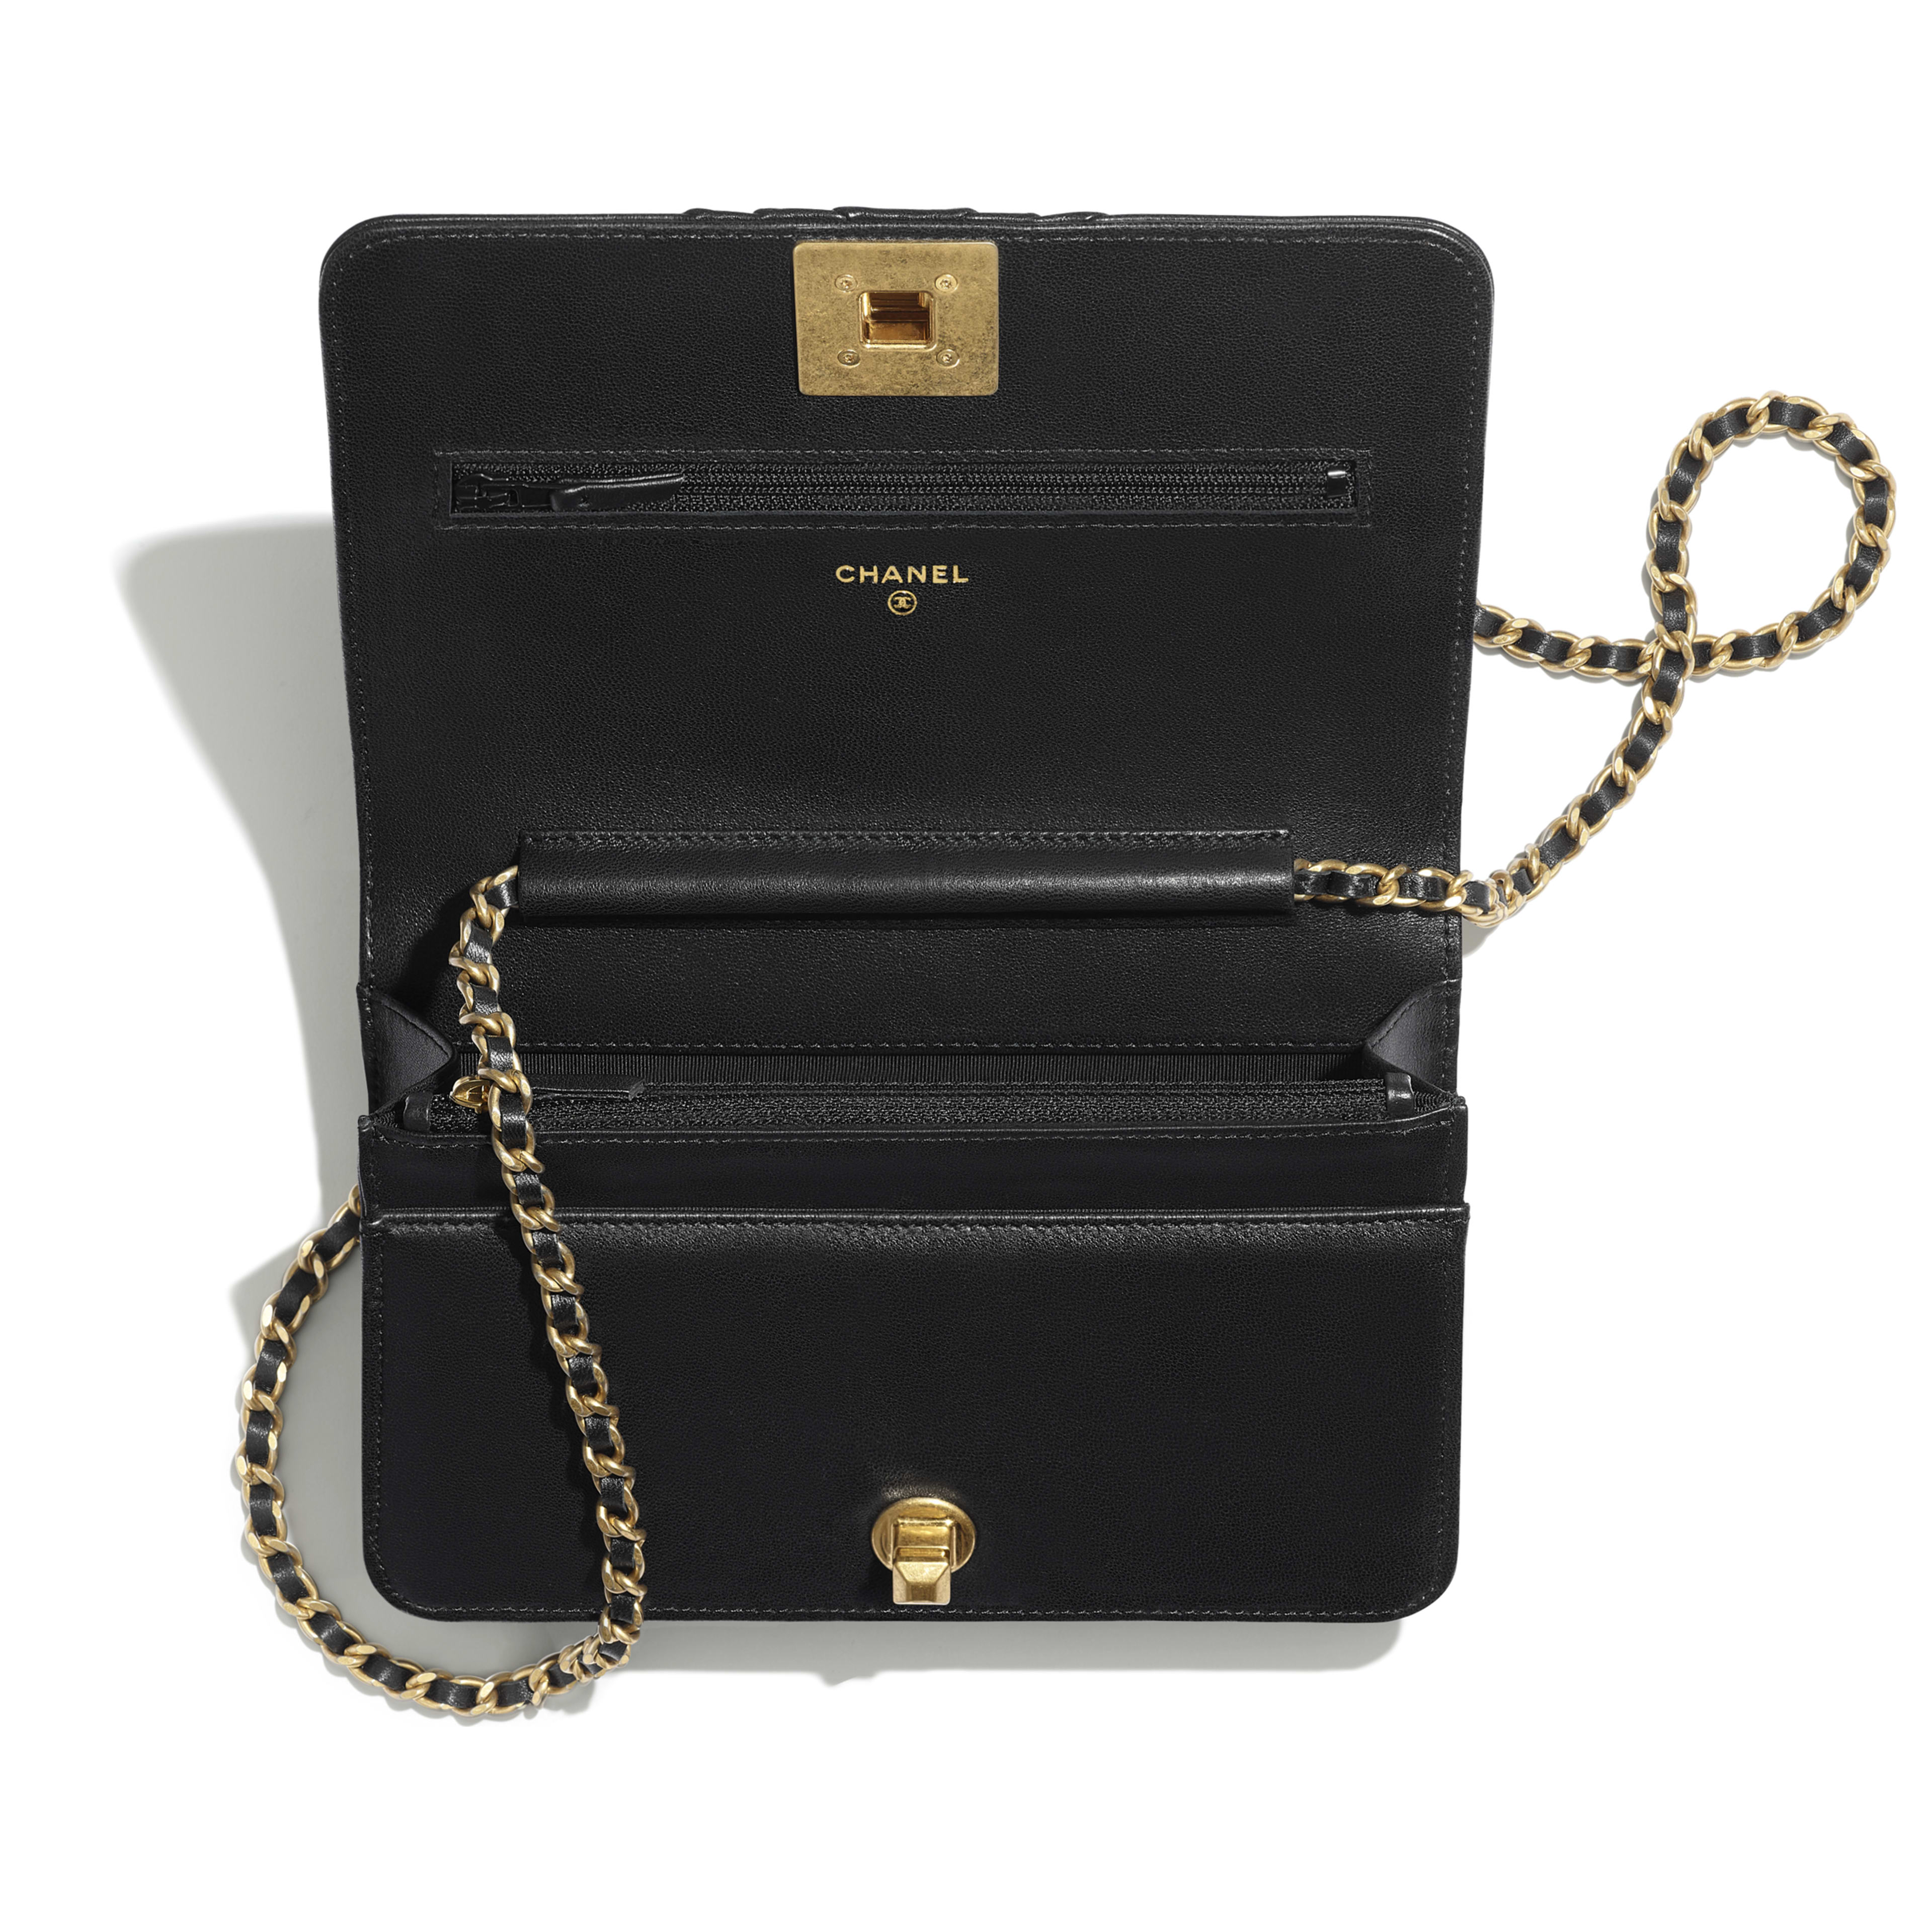 Wallet on Chain - Black - Pleated Lambskin & Gold-Tone Metal - Other view - see full sized version